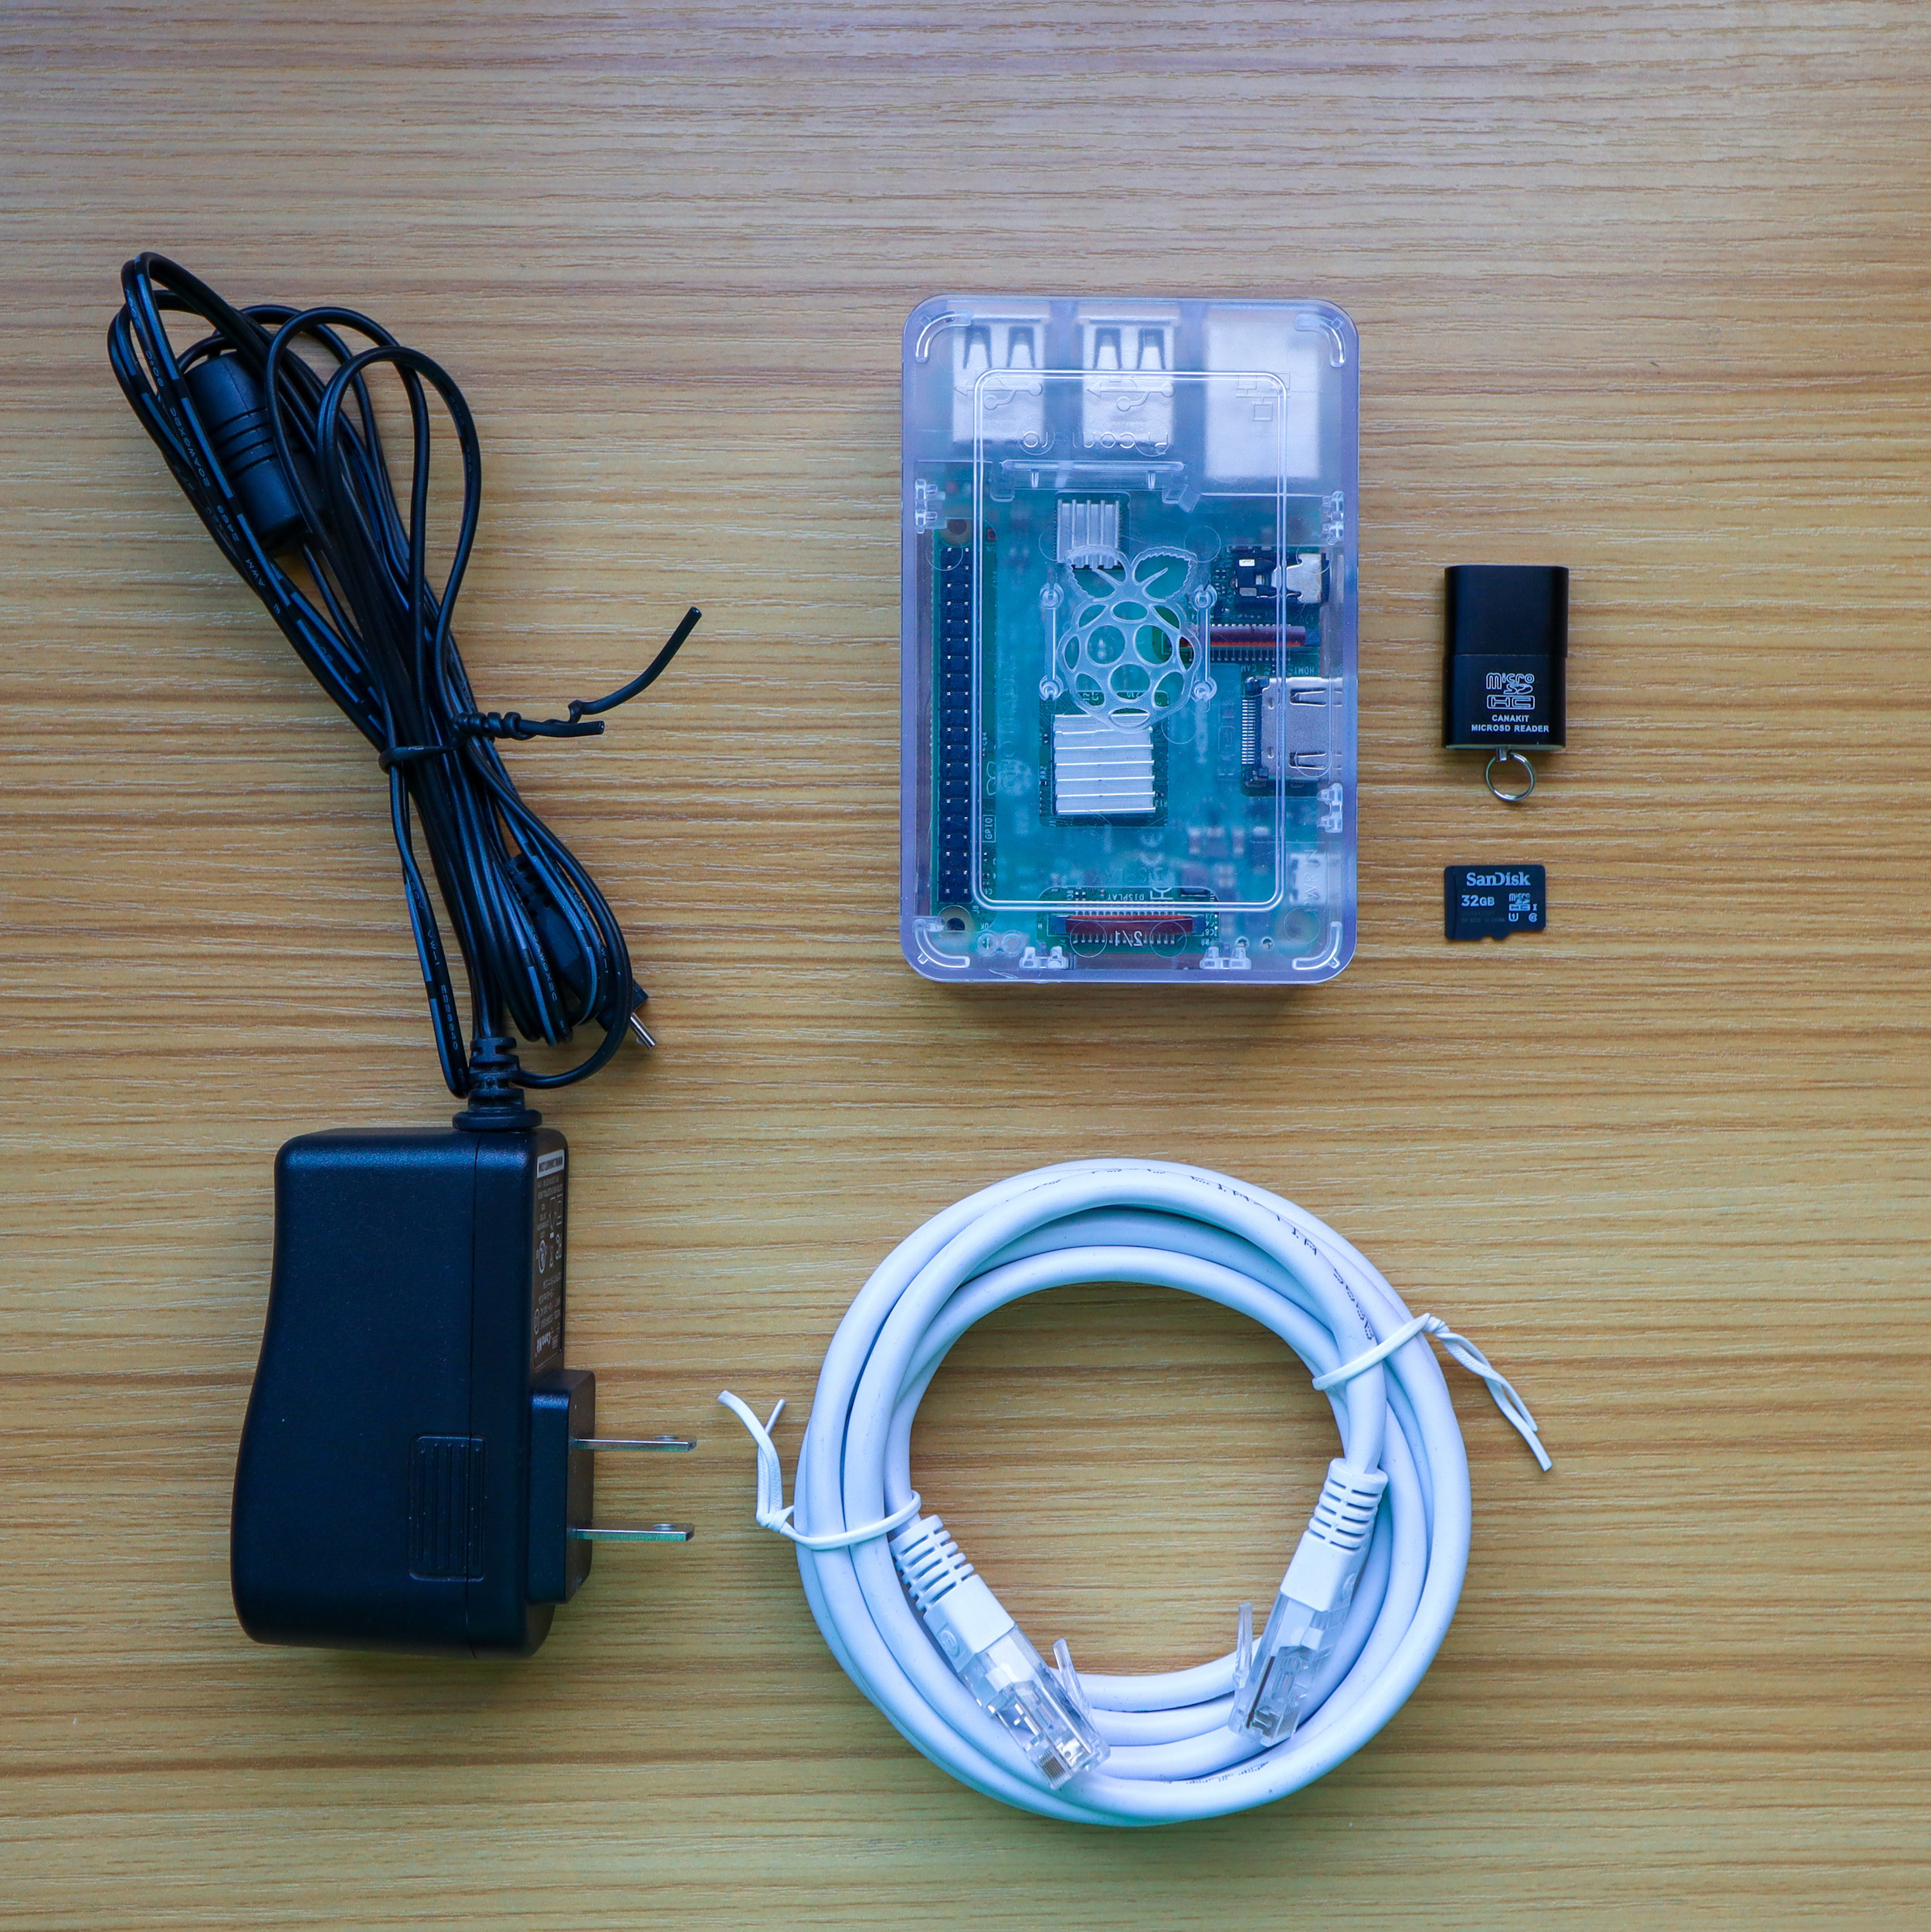 Raspberry pi, power supply, ethernet cable, and micro-sd card